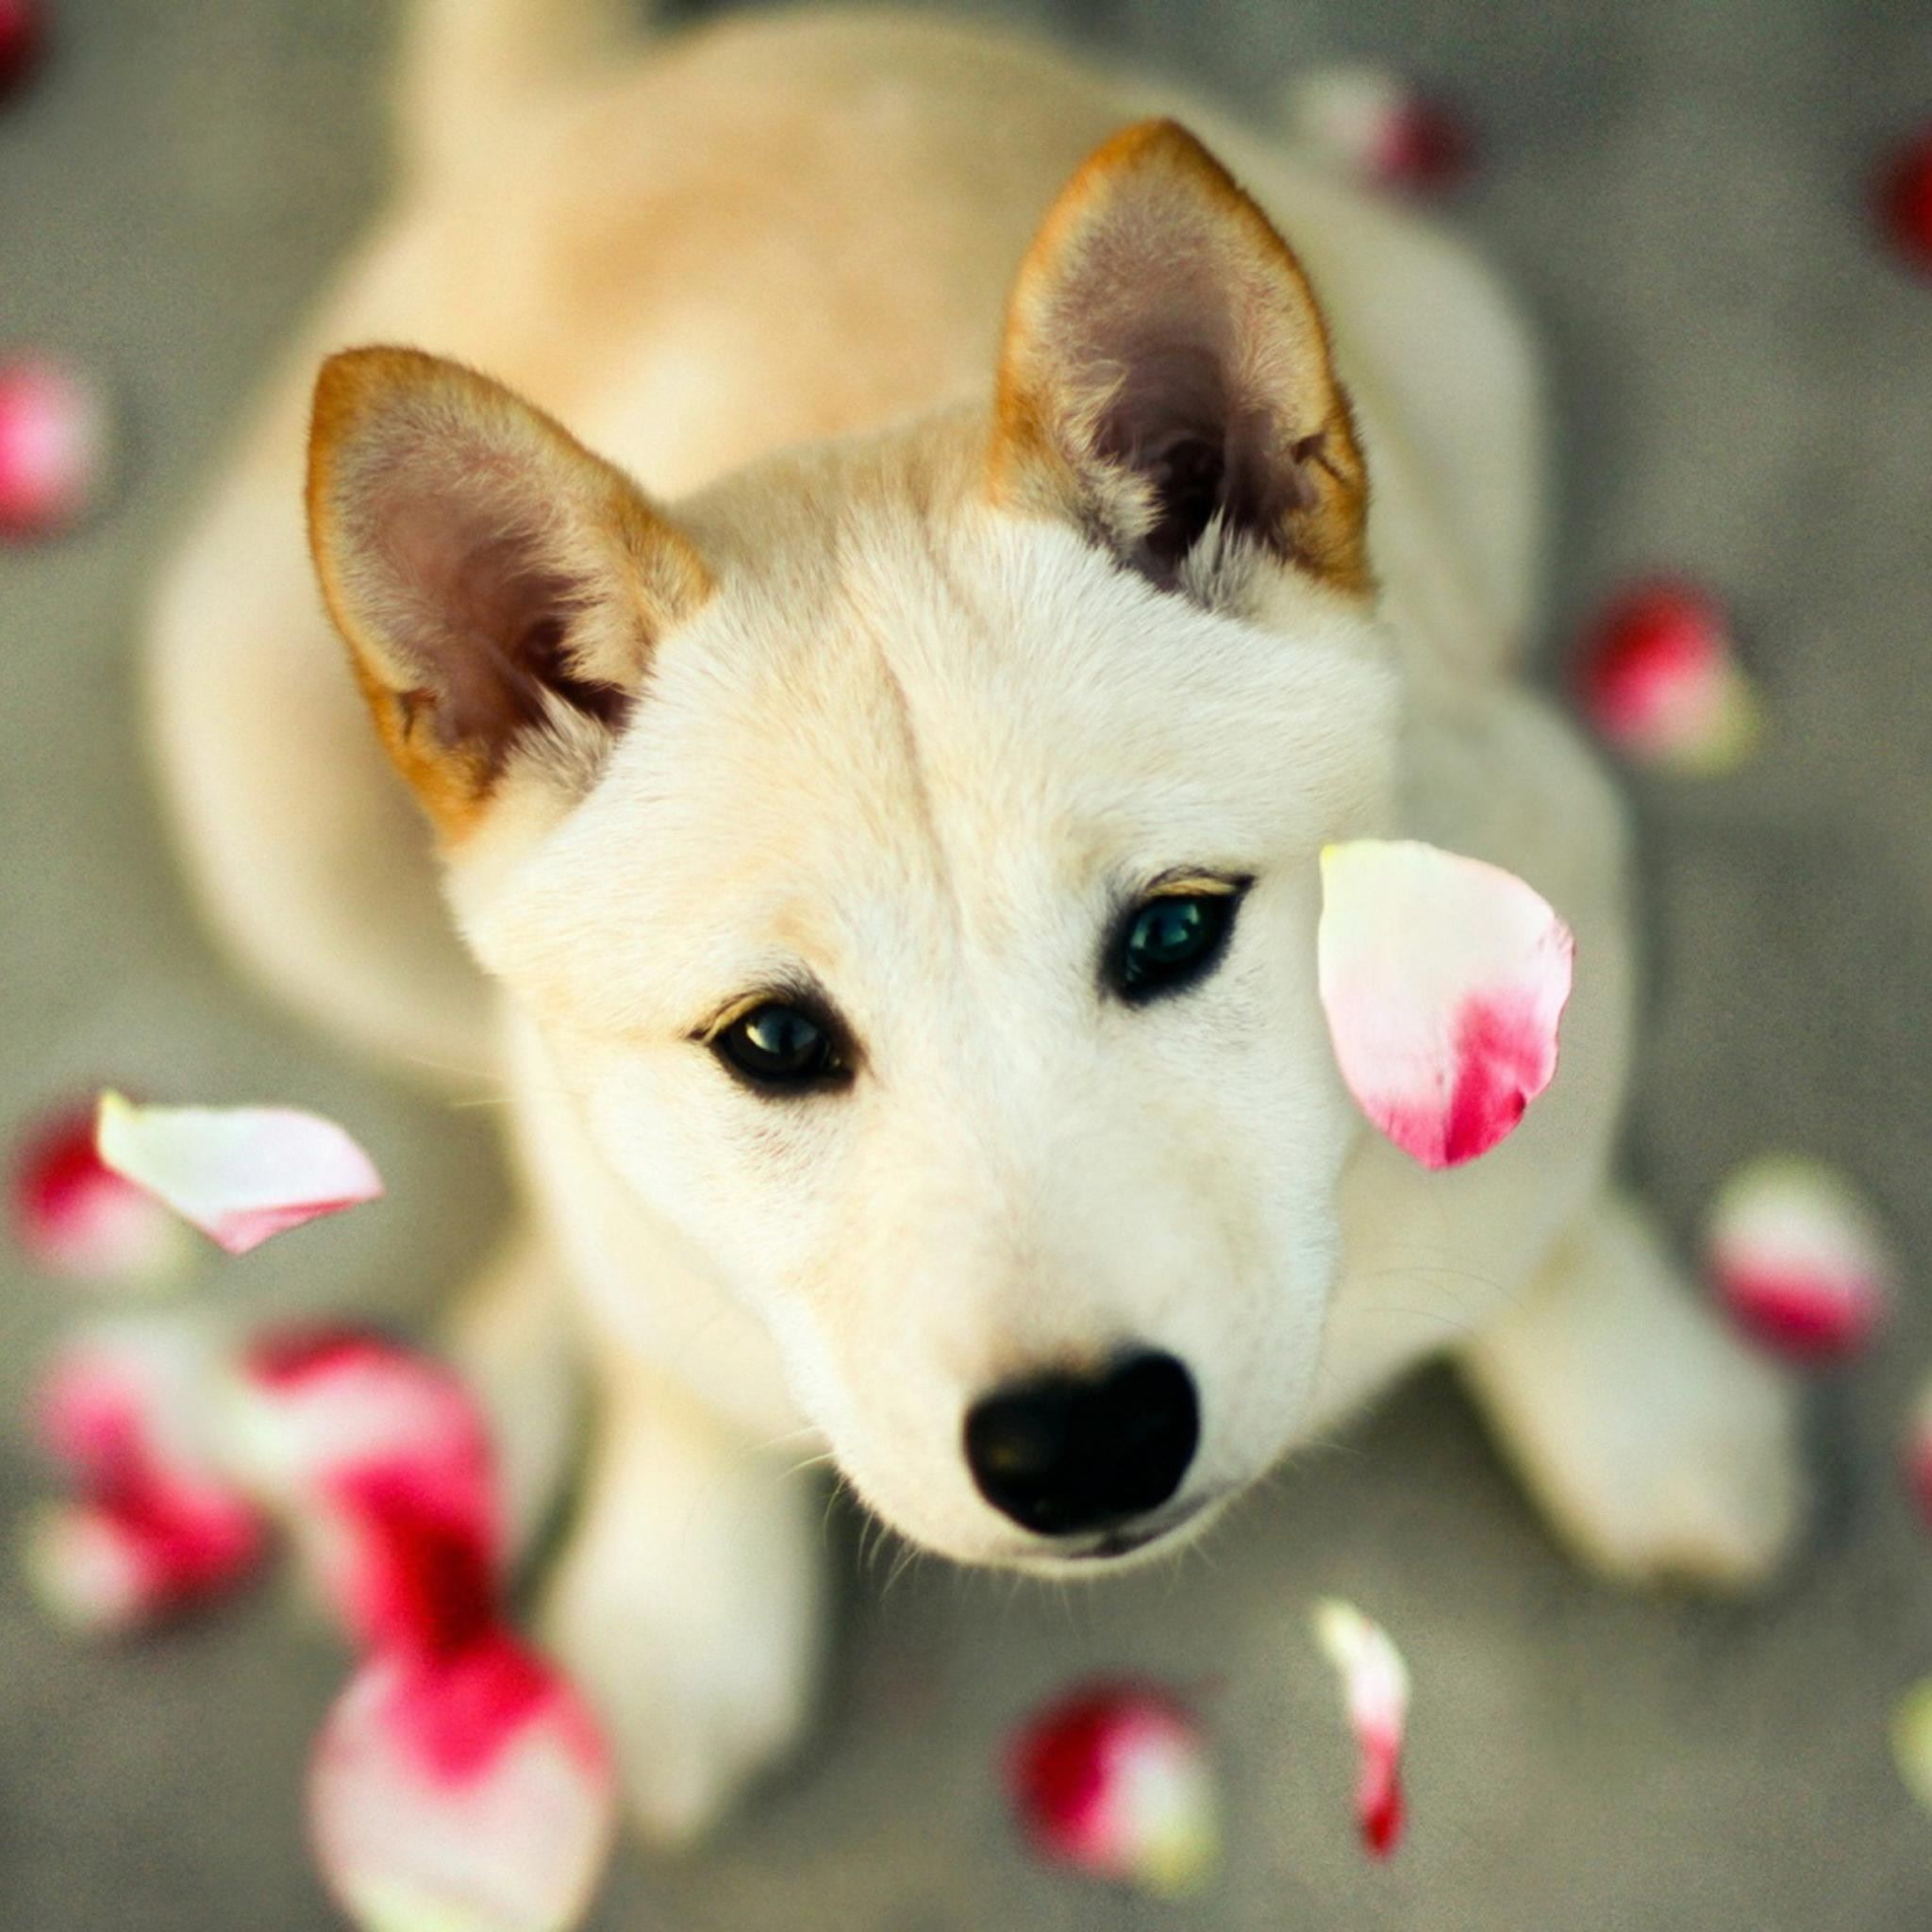 Best Pets Animals Ipad Air Wallpapers Free Hd